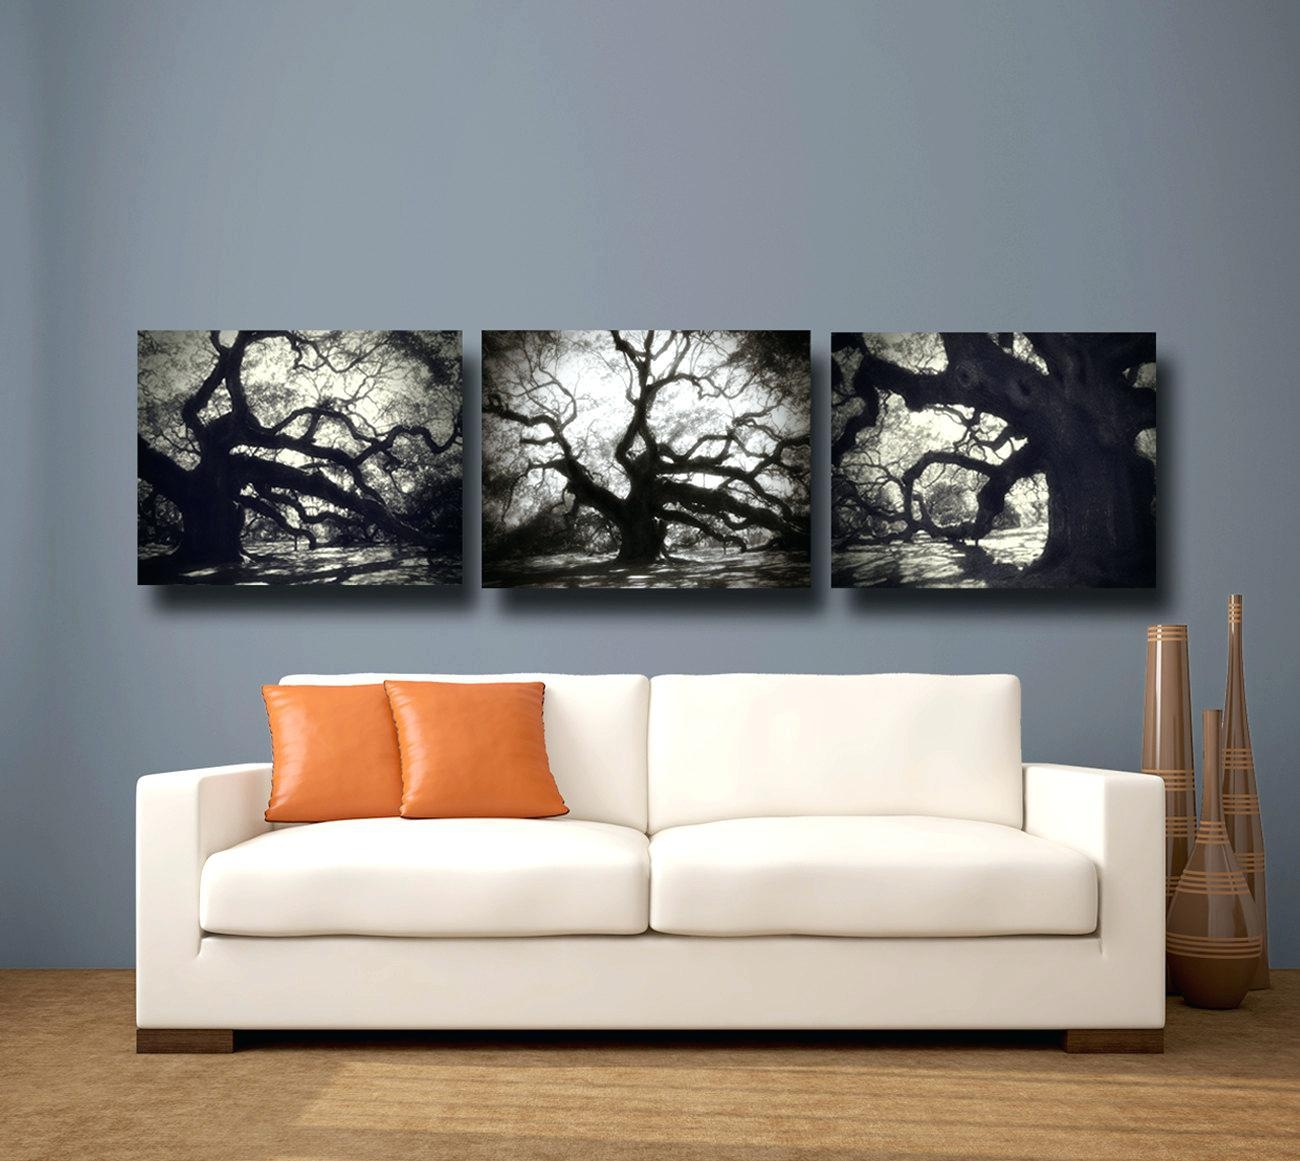 17 Best Ideas About Large Wall Art On Pinterest: 20 Collection Of Extra Large Framed Wall Art